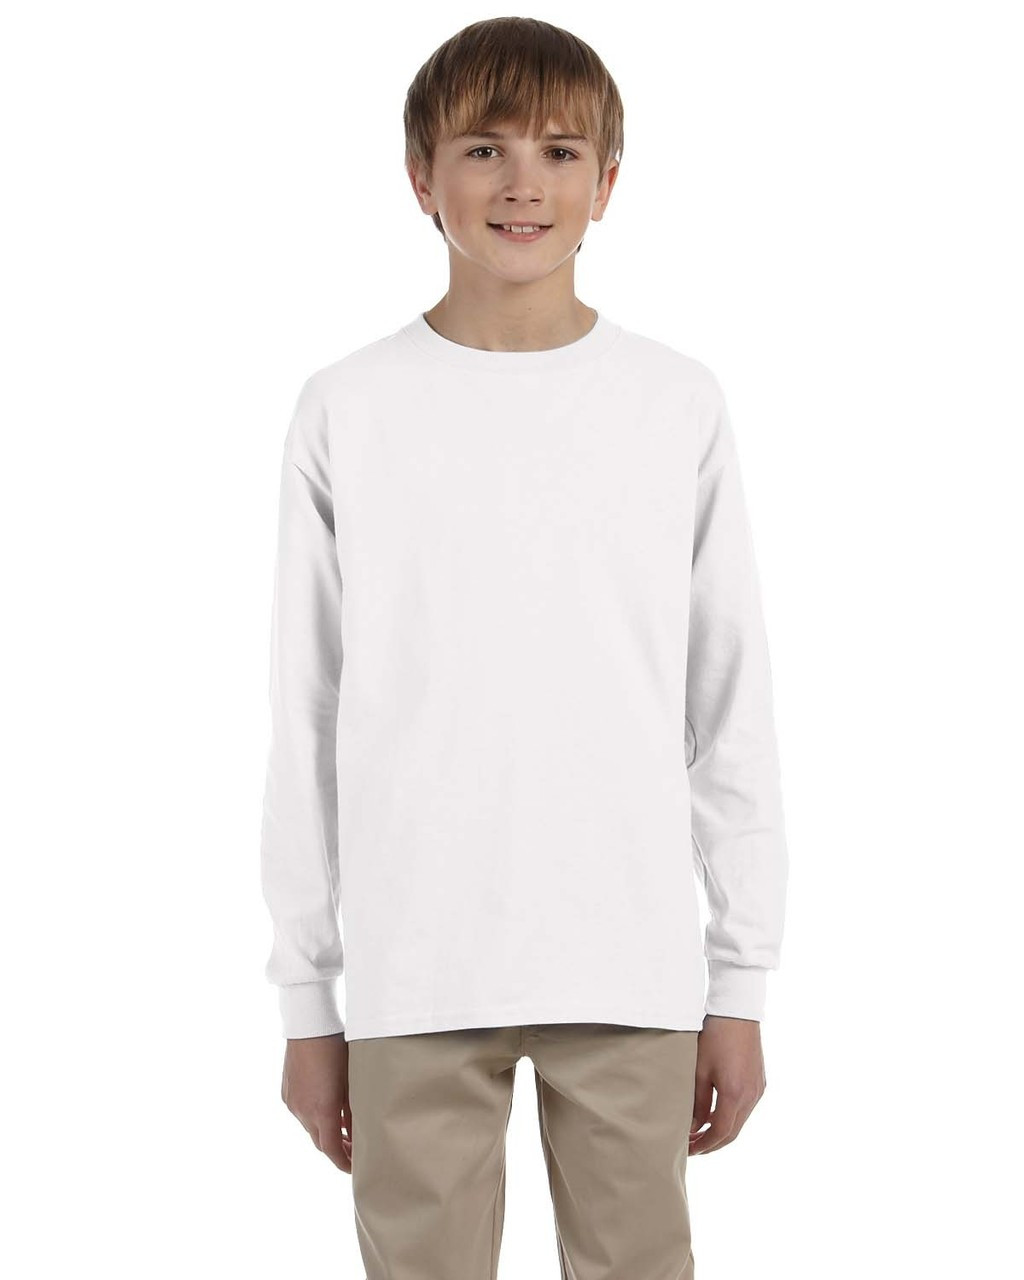 White - G240B Ultra Cotton Youth Long Sleeve T-Shirt | Blankclothing.ca